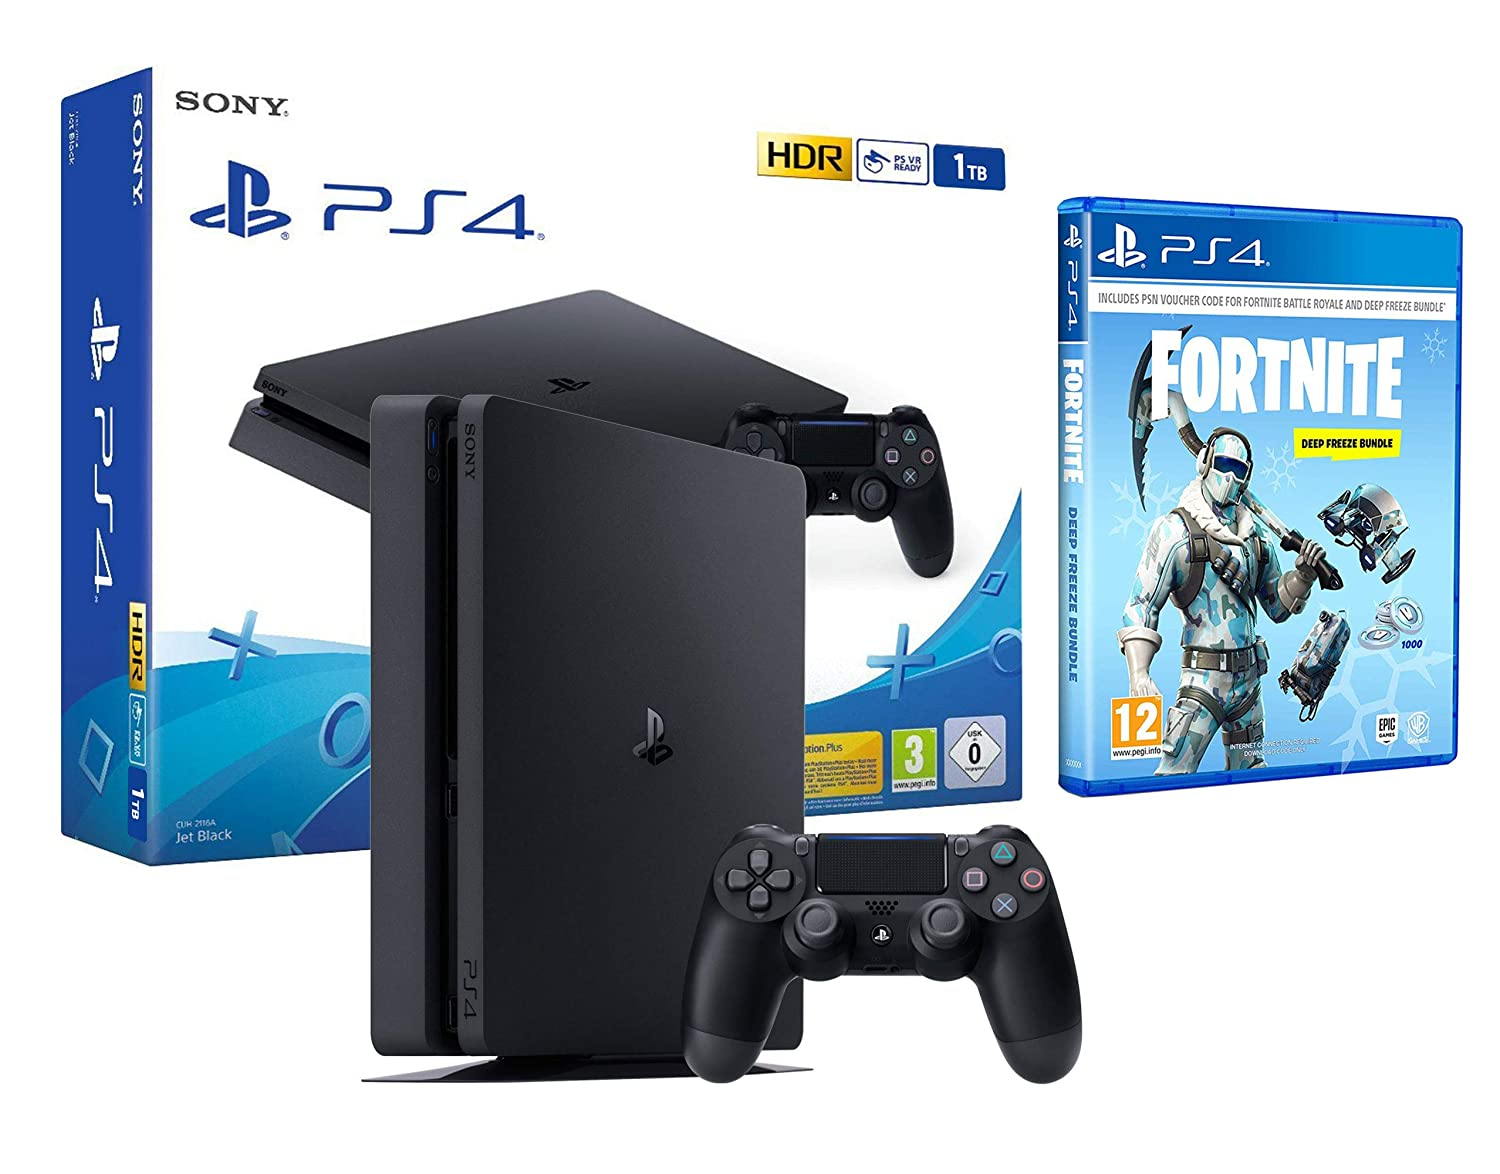 Ps4 Slim 1tb Schwarz Playstation 4 Konsole Fortnite Deep Freeze